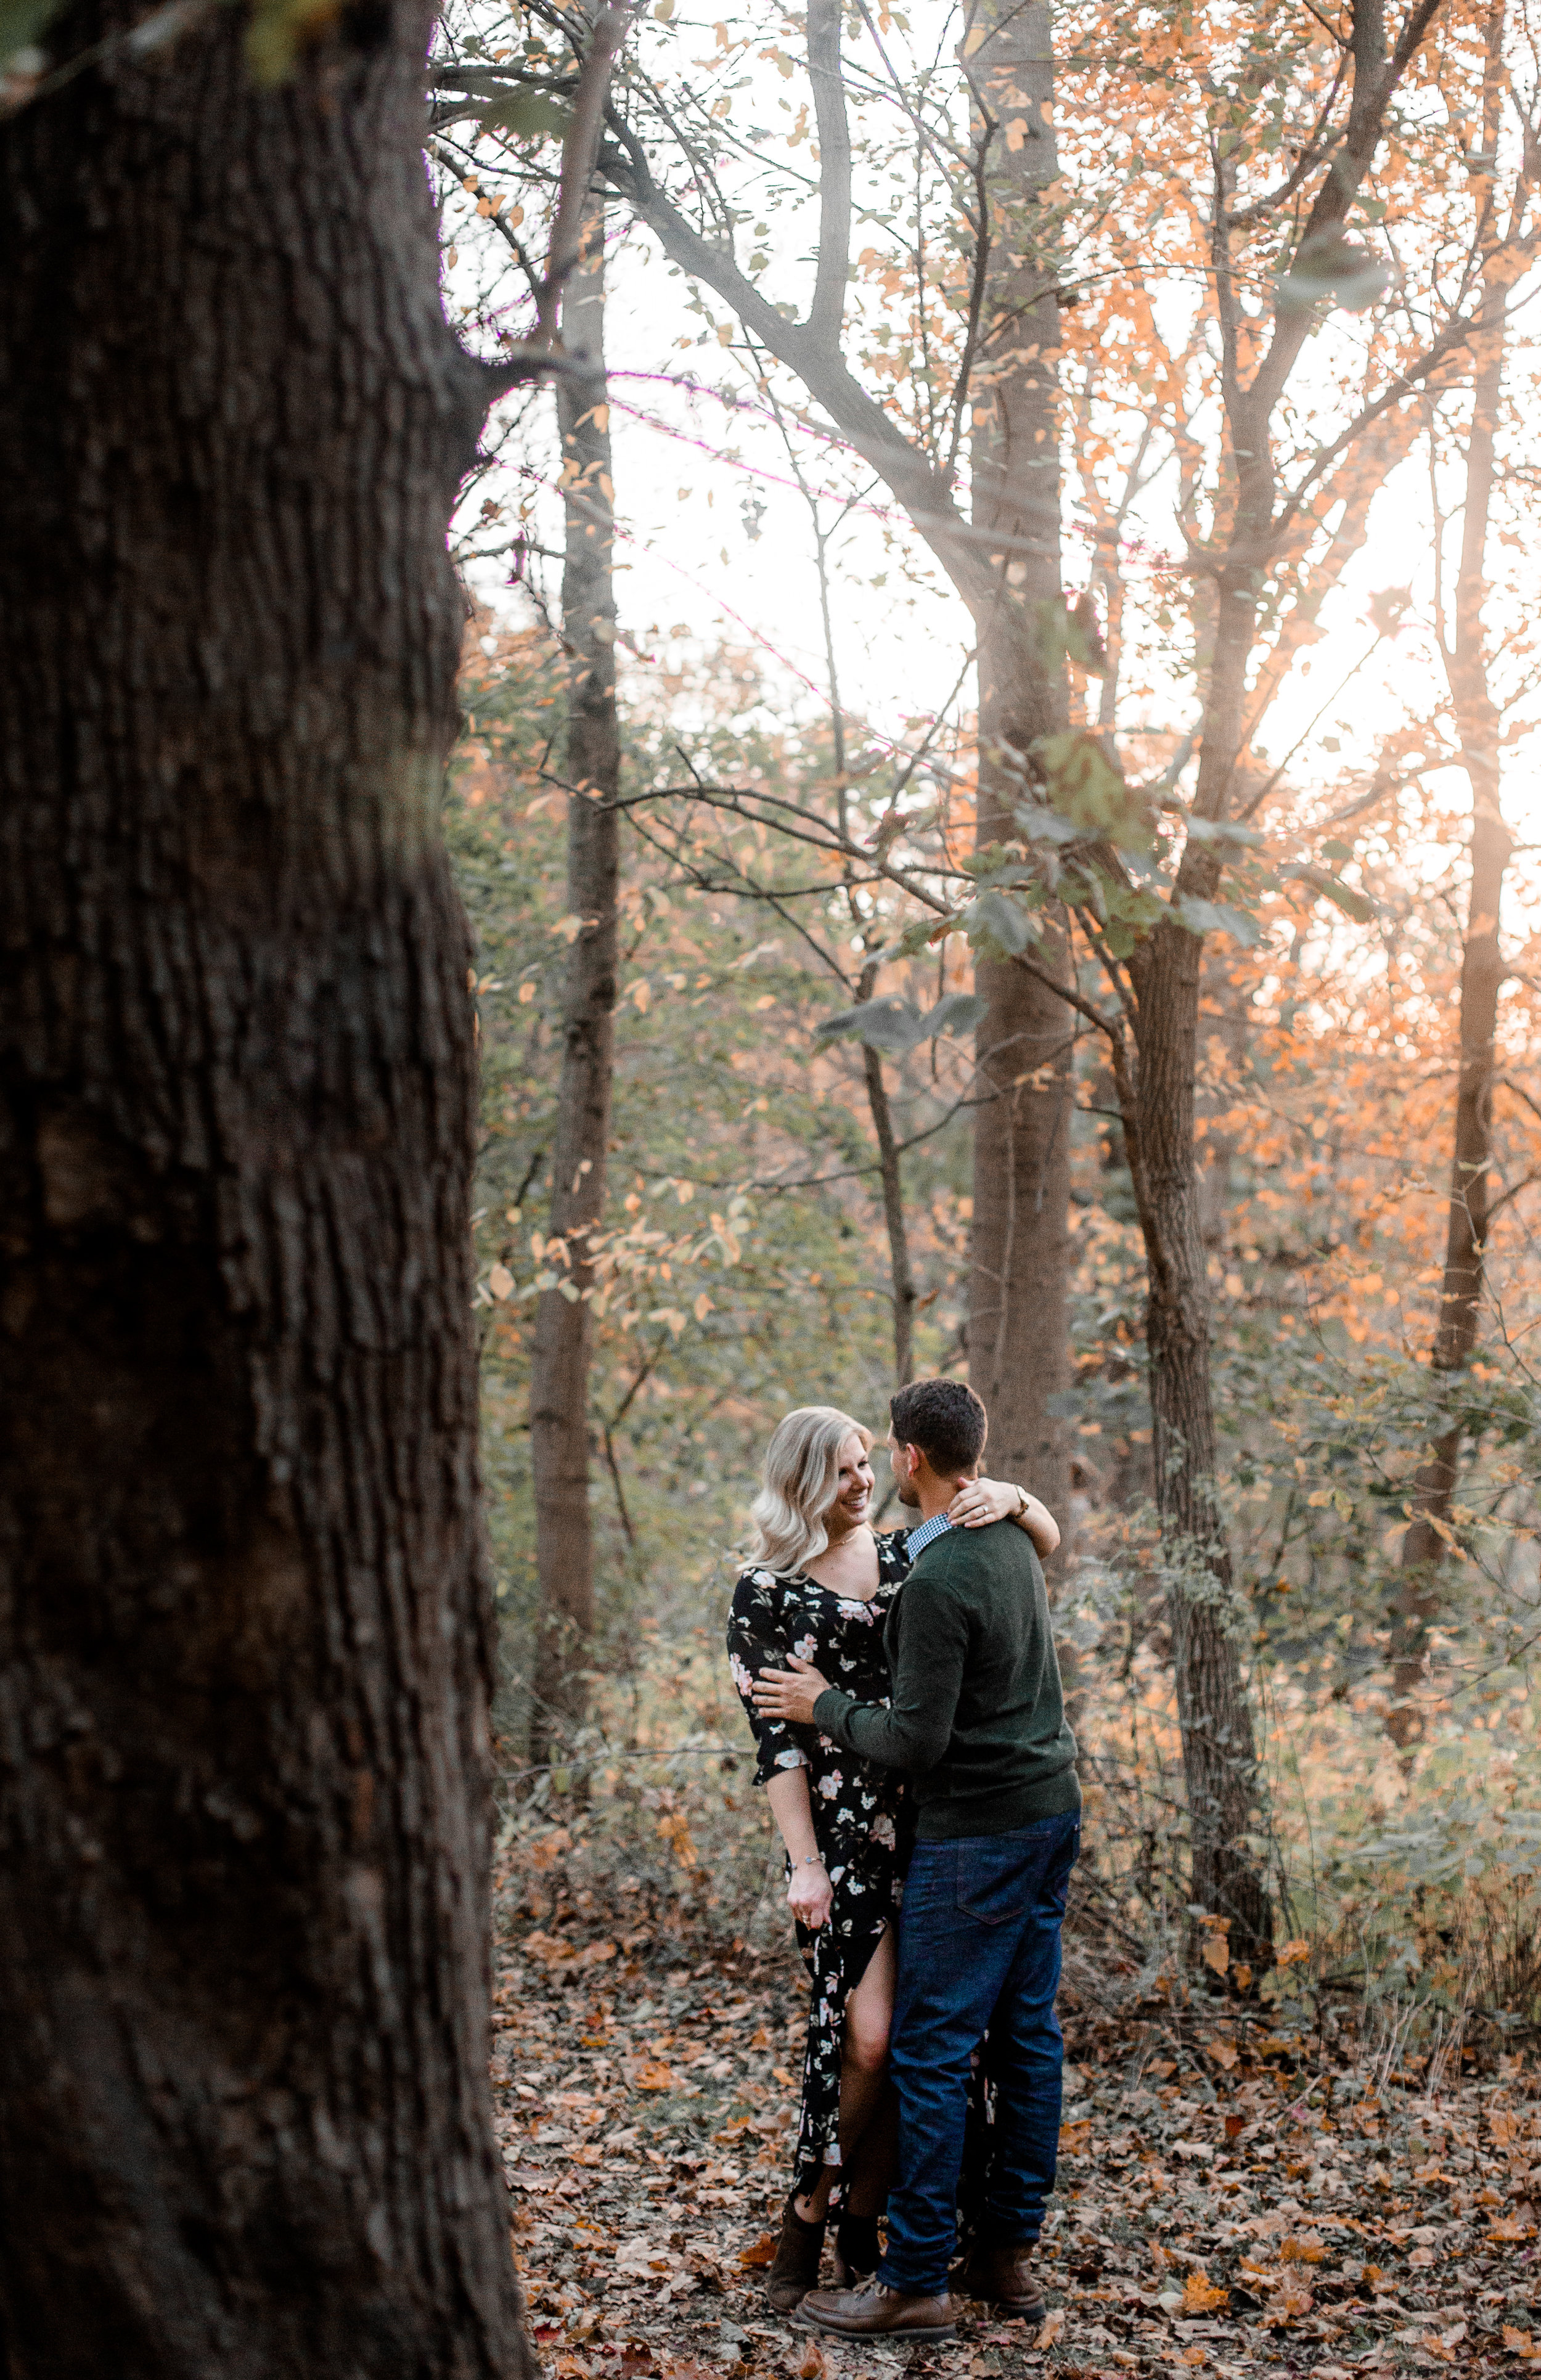 nicole-daacke-photography-carefree-bohemian-lancaster-pa-pennsylvania-engagement-photos-engagement-session-golden-sunset-adventure-session-in-lancaster-pa-lancaster-pa-outdoor-wedding-photographer-59.jpg